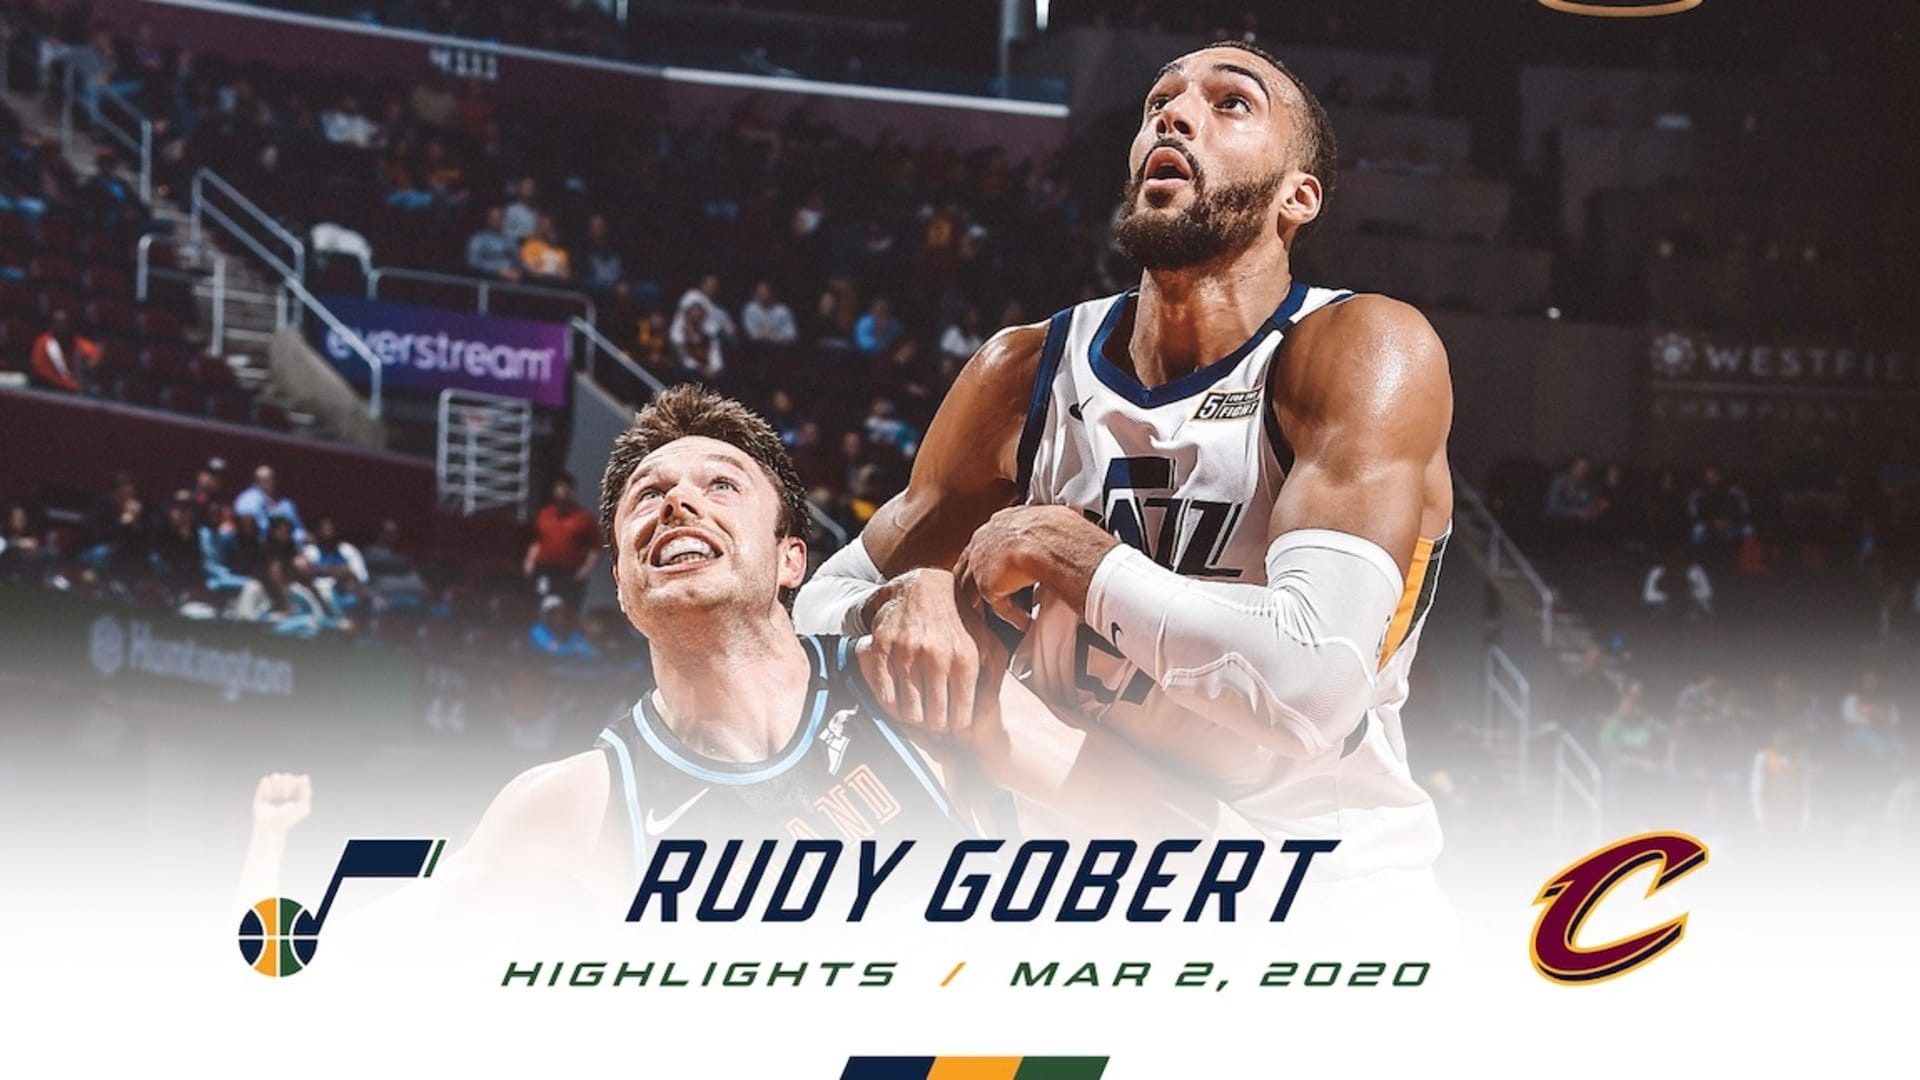 Highlights: Rudy Gobert — 20 points, 9 rebounds